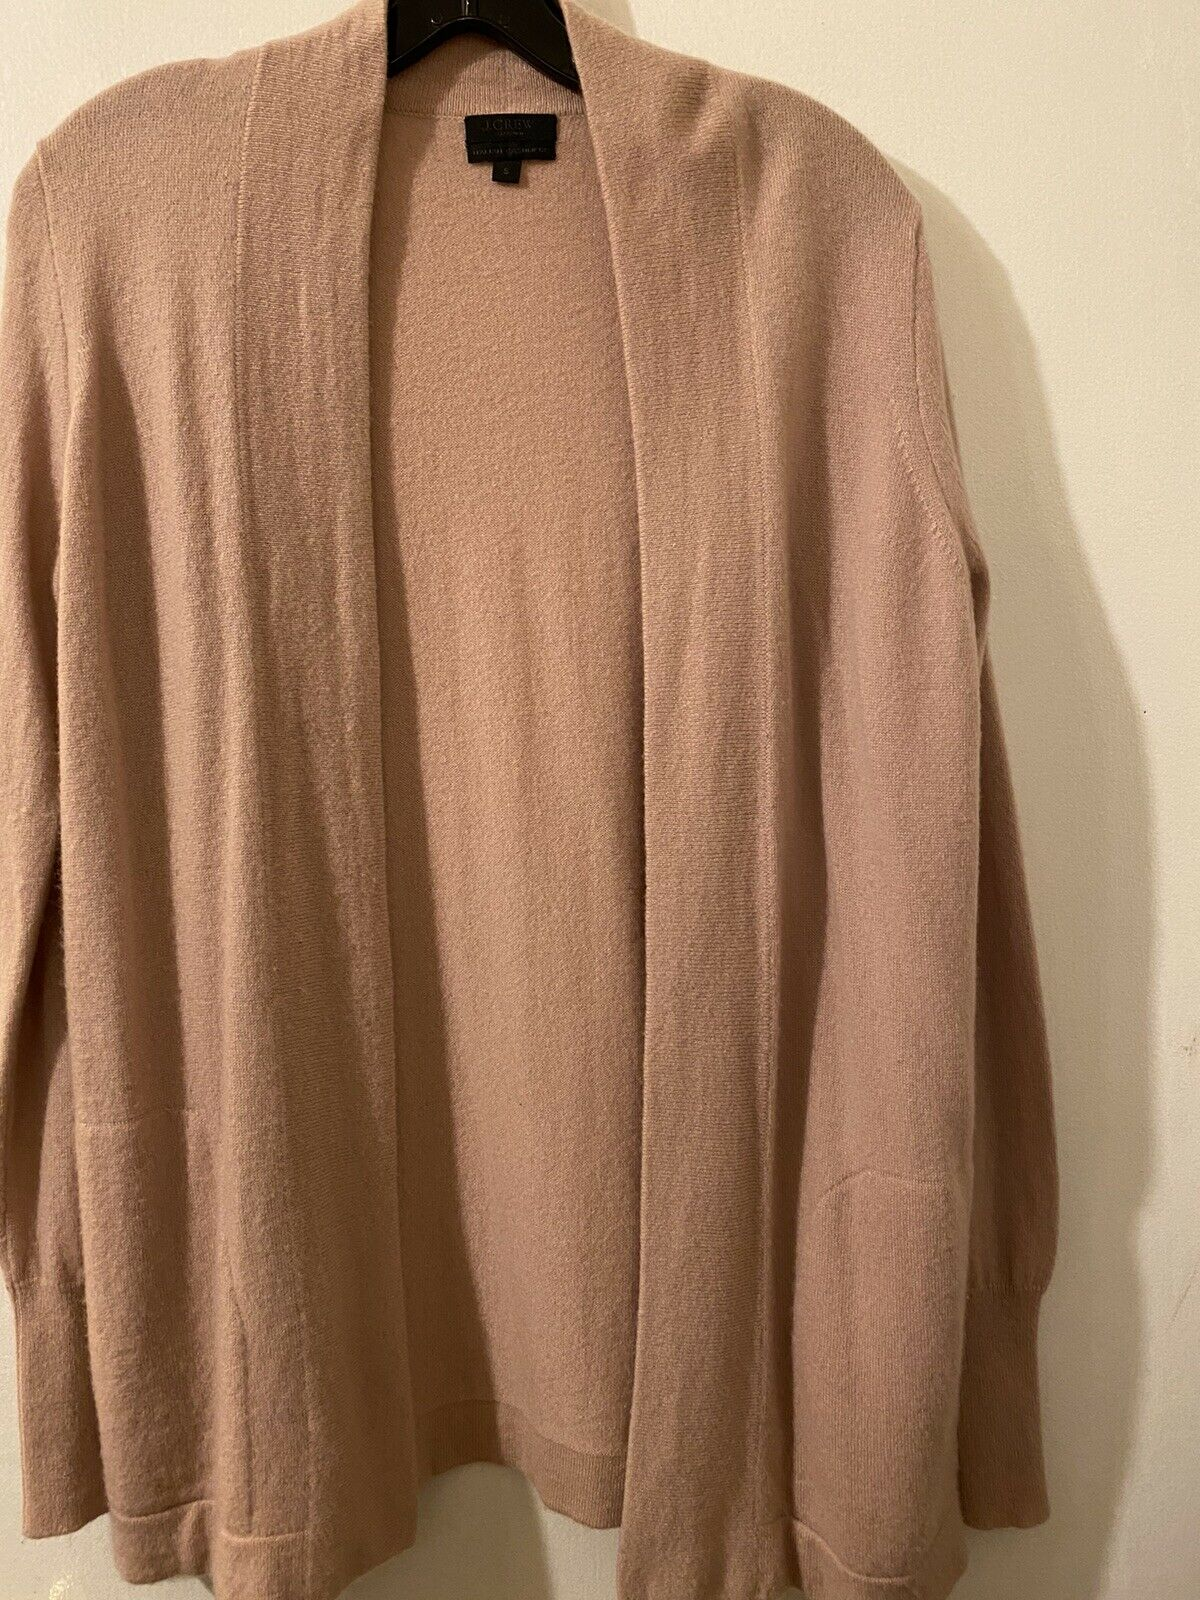 J. Crew Collection Cashmere Open Cardigan Size S … - image 1